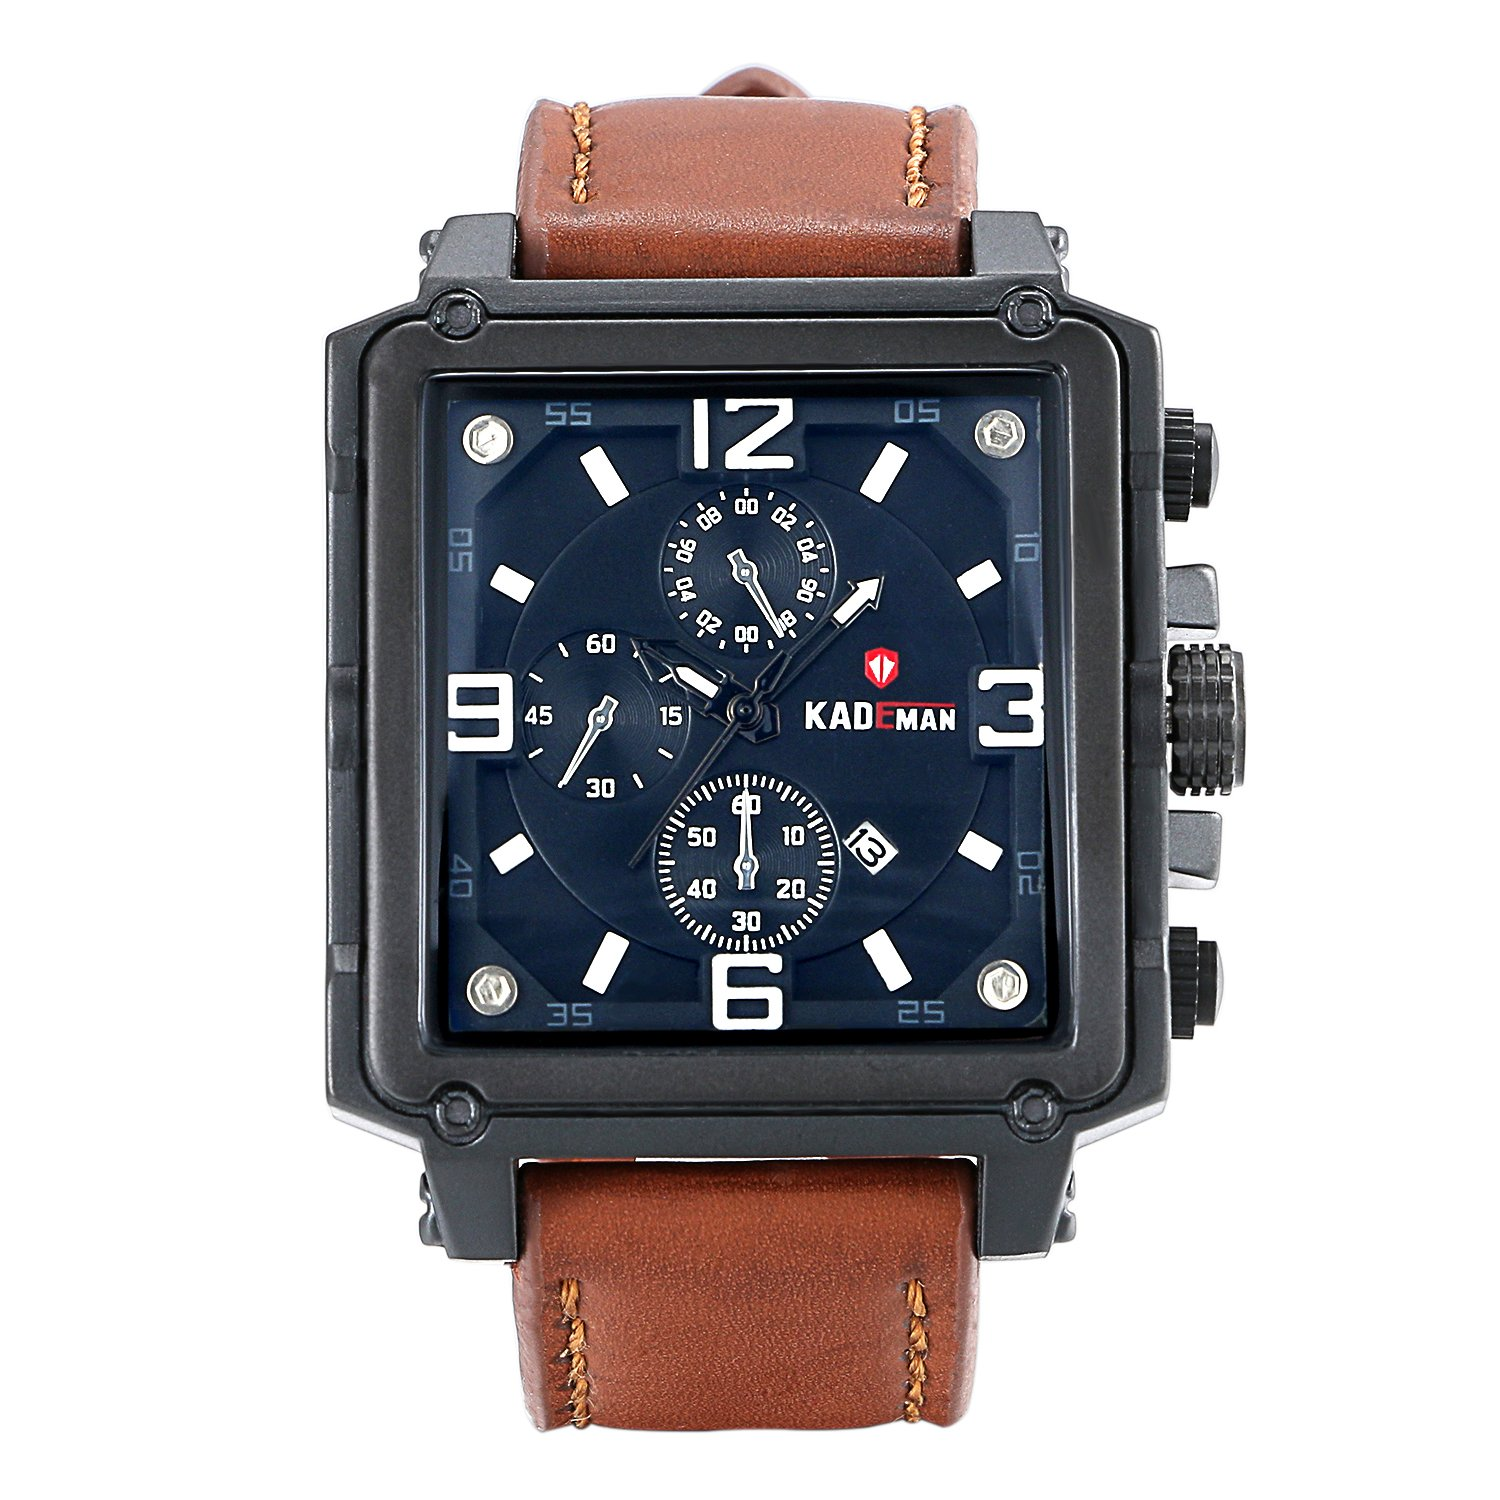 Lancardo 30M Water Resistant Men's Big Square Face Wrist Watch With Brown Leather Strap